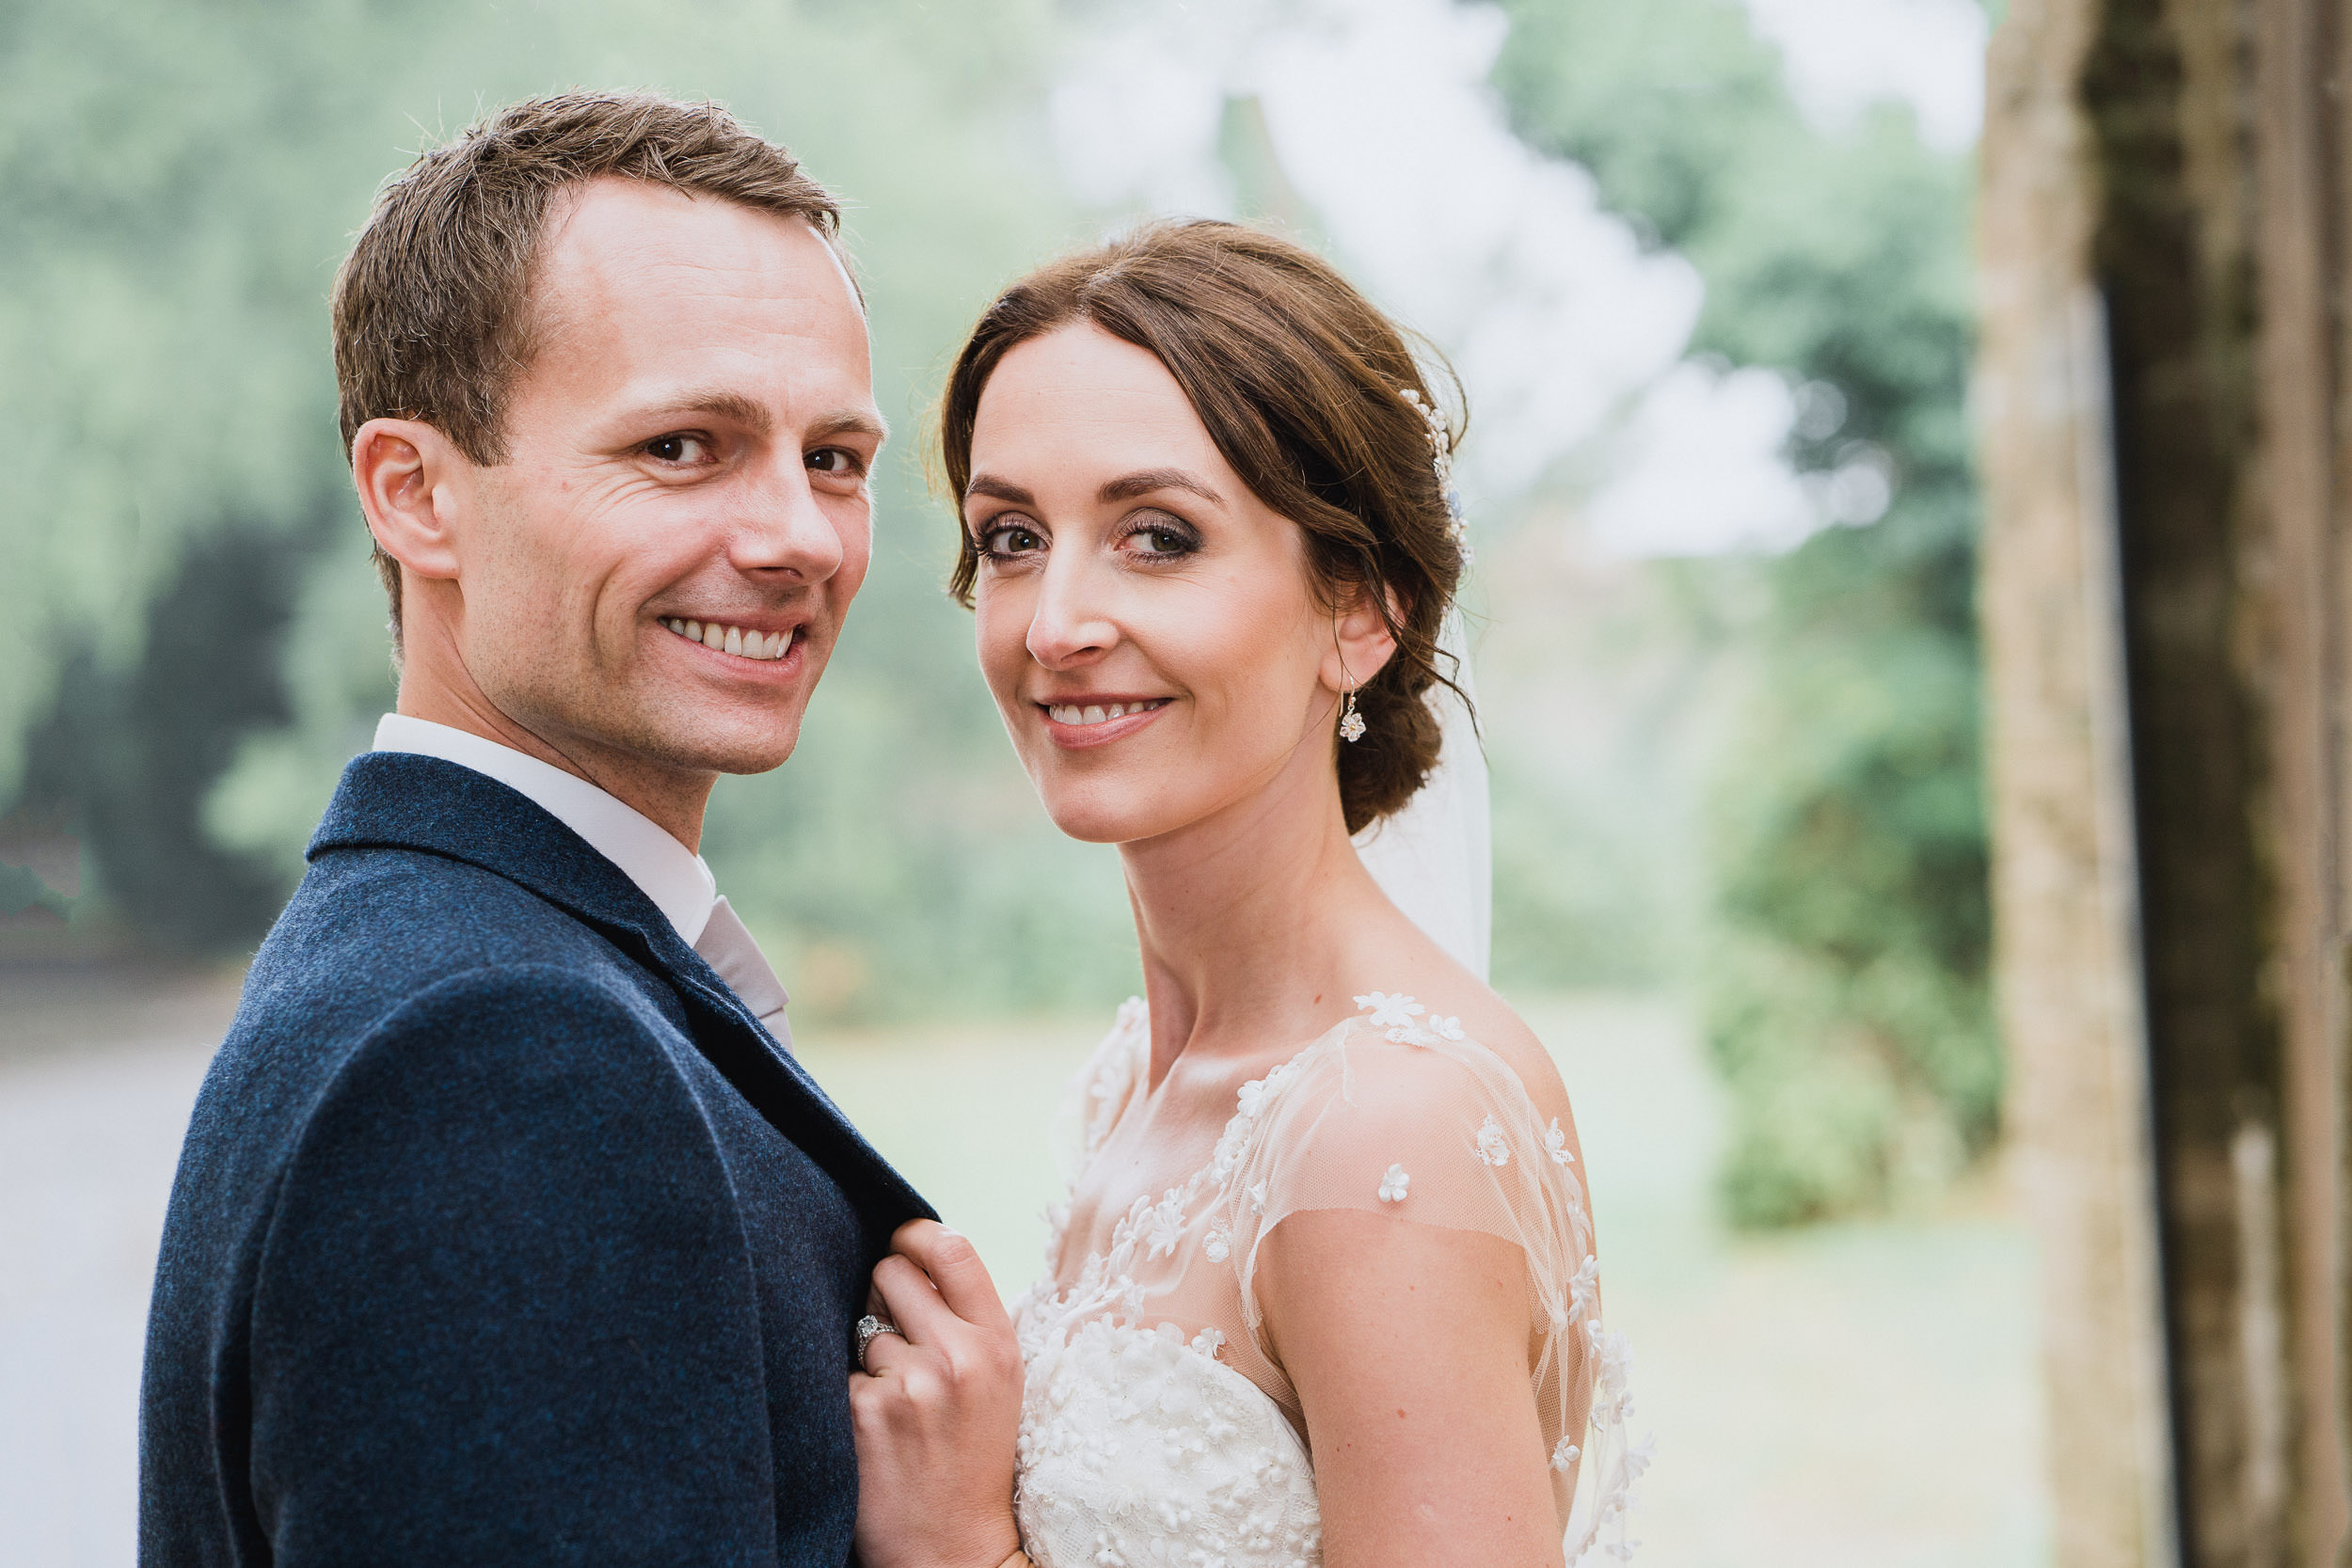 Orchardleigh Estate Wedding - Bride and Groom Portrait